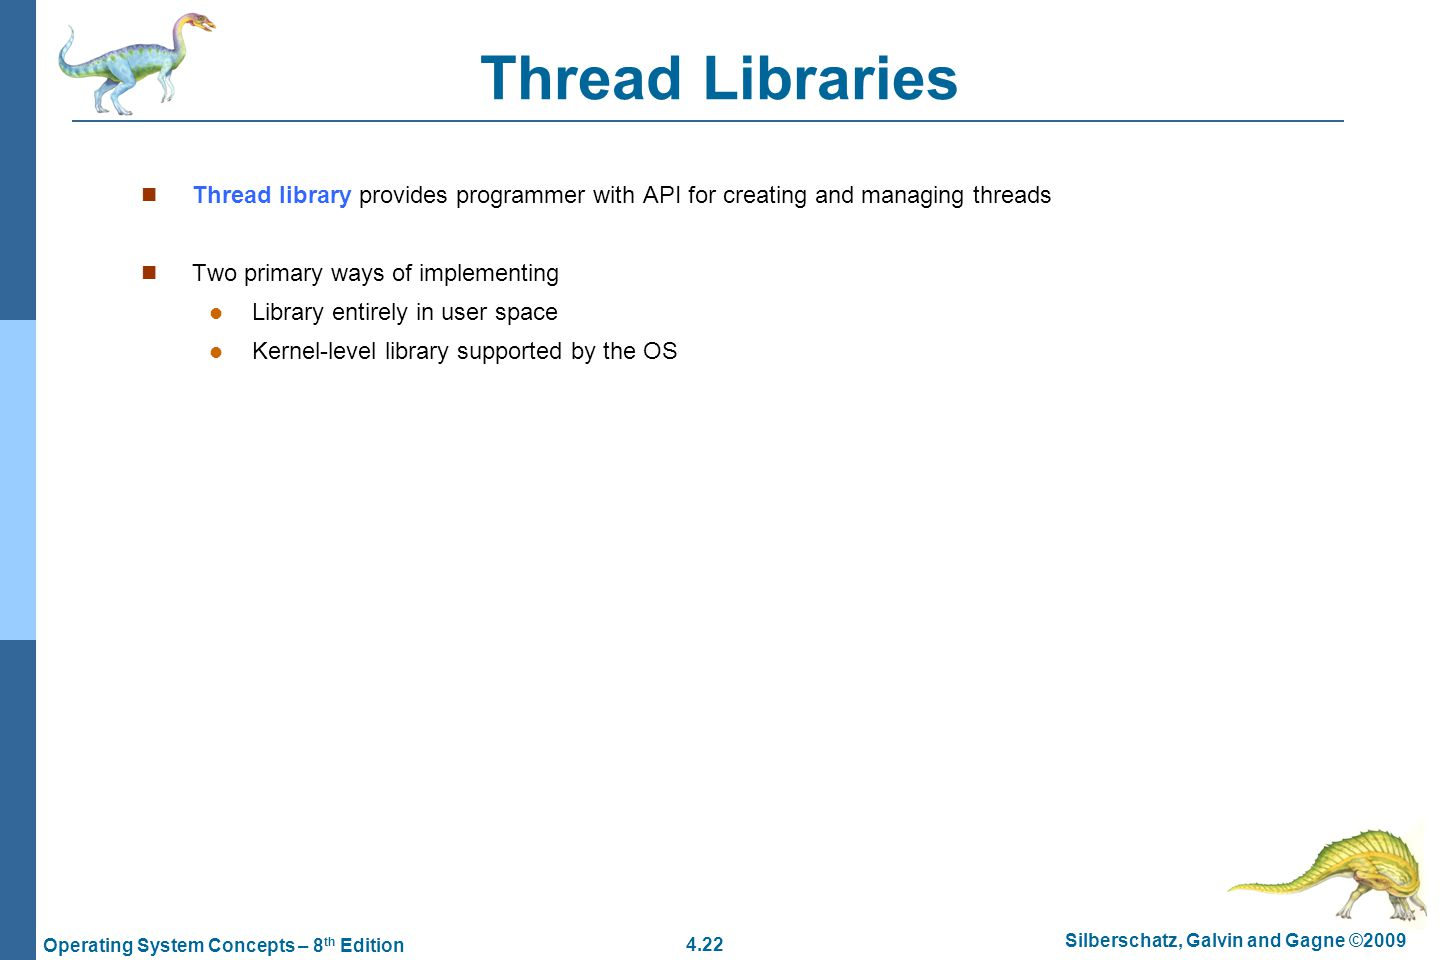 4.22 Silberschatz, Galvin and Gagne ©2009 Operating System Concepts – 8 th Edition Thread Libraries Thread library provides programmer with API for creating and managing threads Two primary ways of implementing Library entirely in user space Kernel-level library supported by the OS